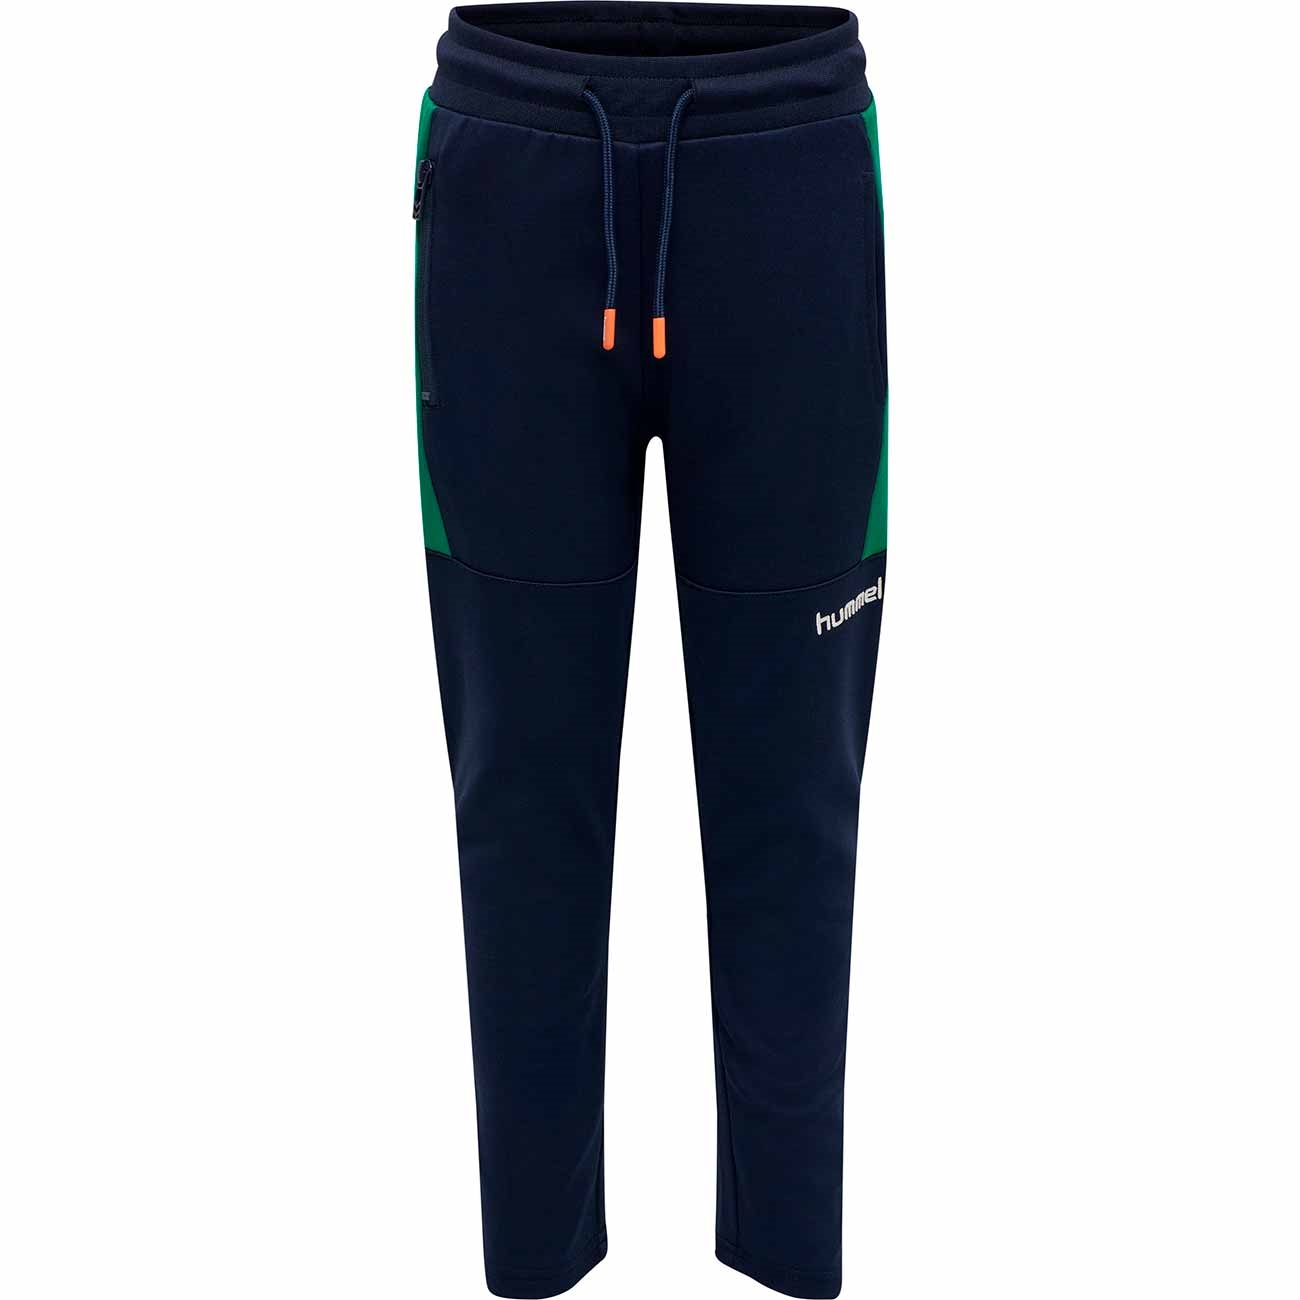 hummel-pants-bukser-black-iris-dark-blue-moerkeblaa-orange-green-groen